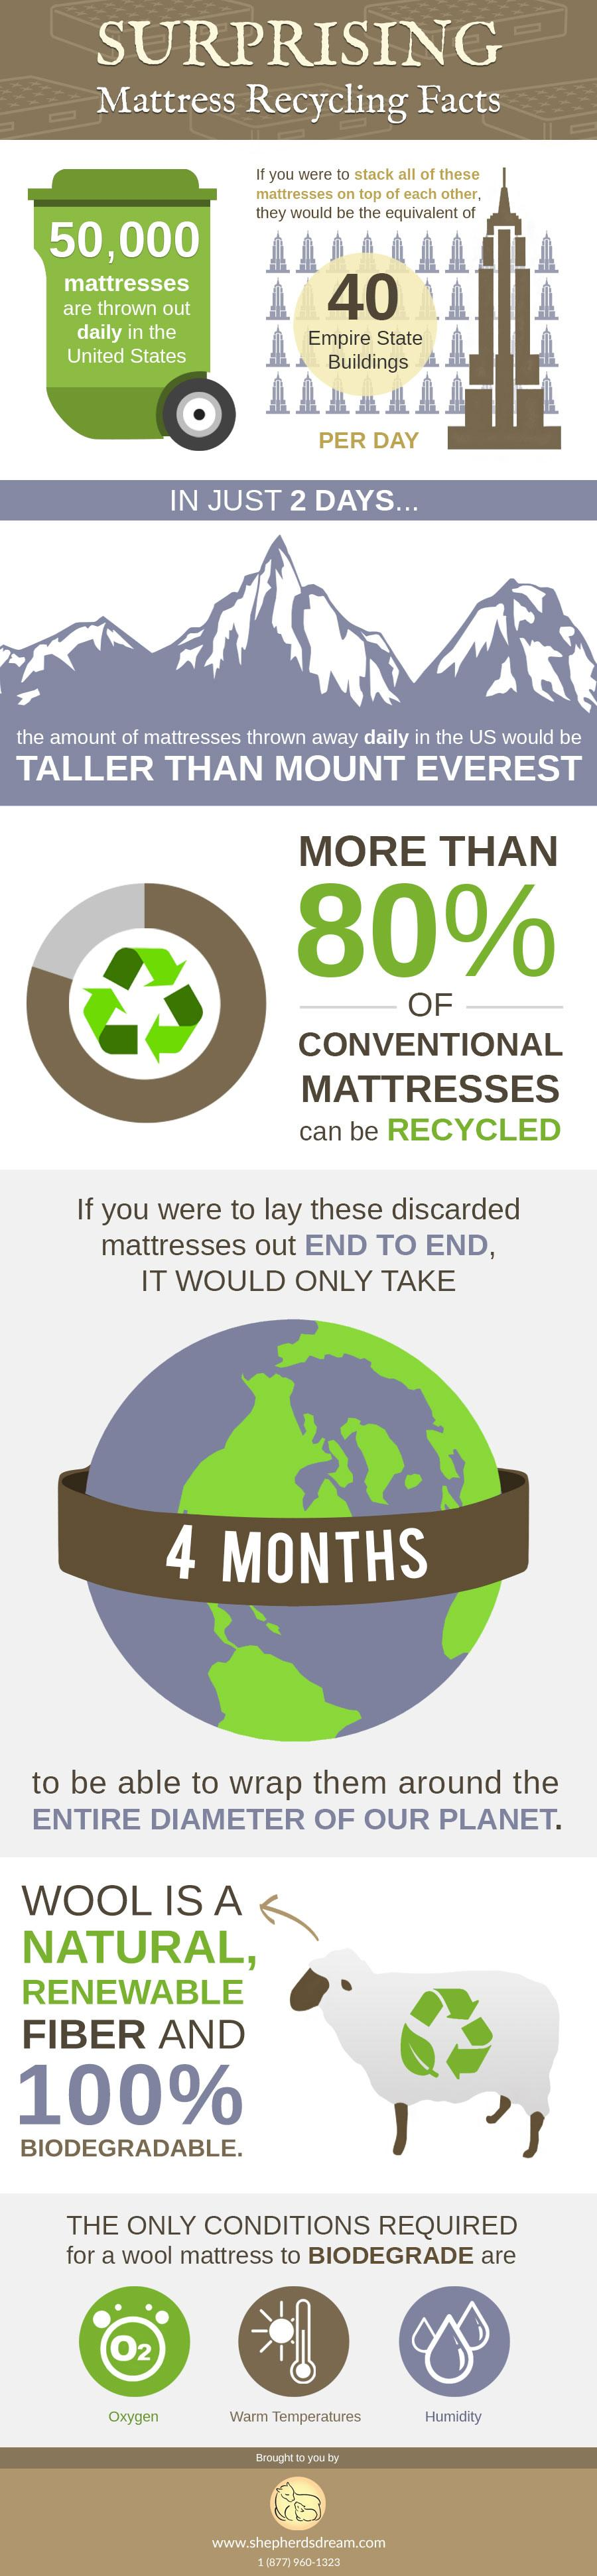 Biodegradable Beds vs Conventional Mattresses in Landfills